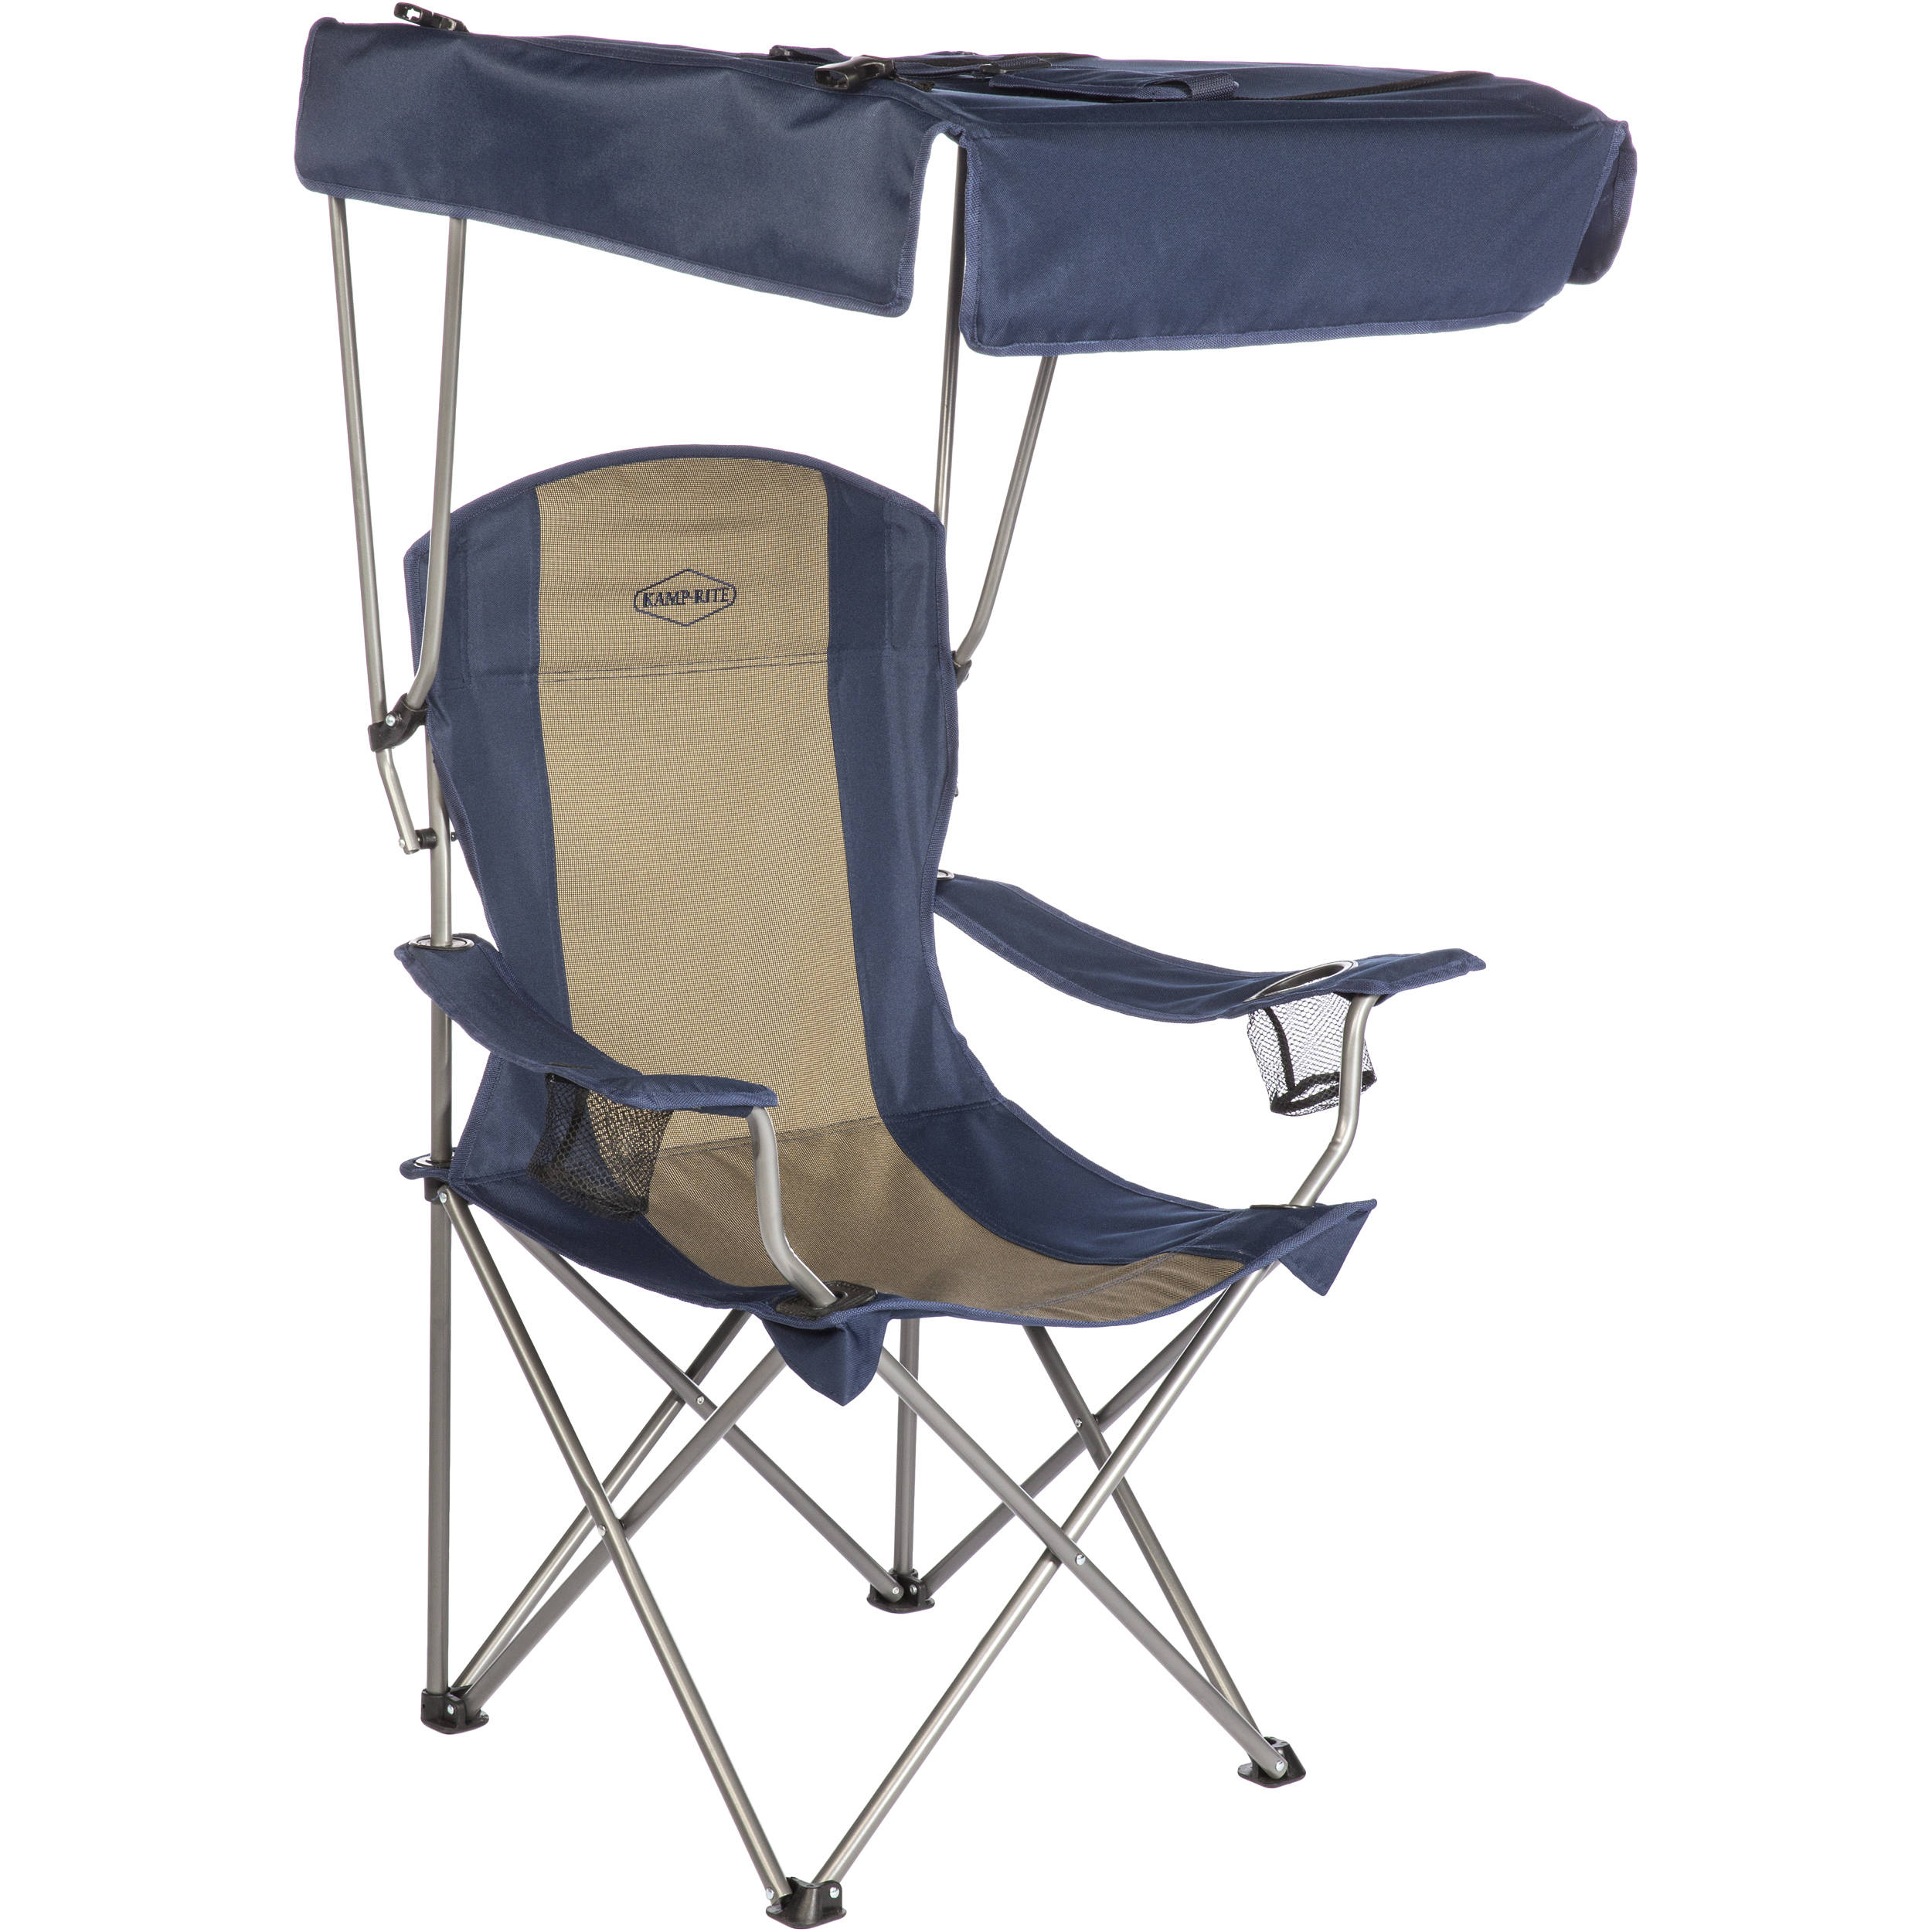 folding chair with canopy kamp-rite folding chair with shade canopy SVXQFUH